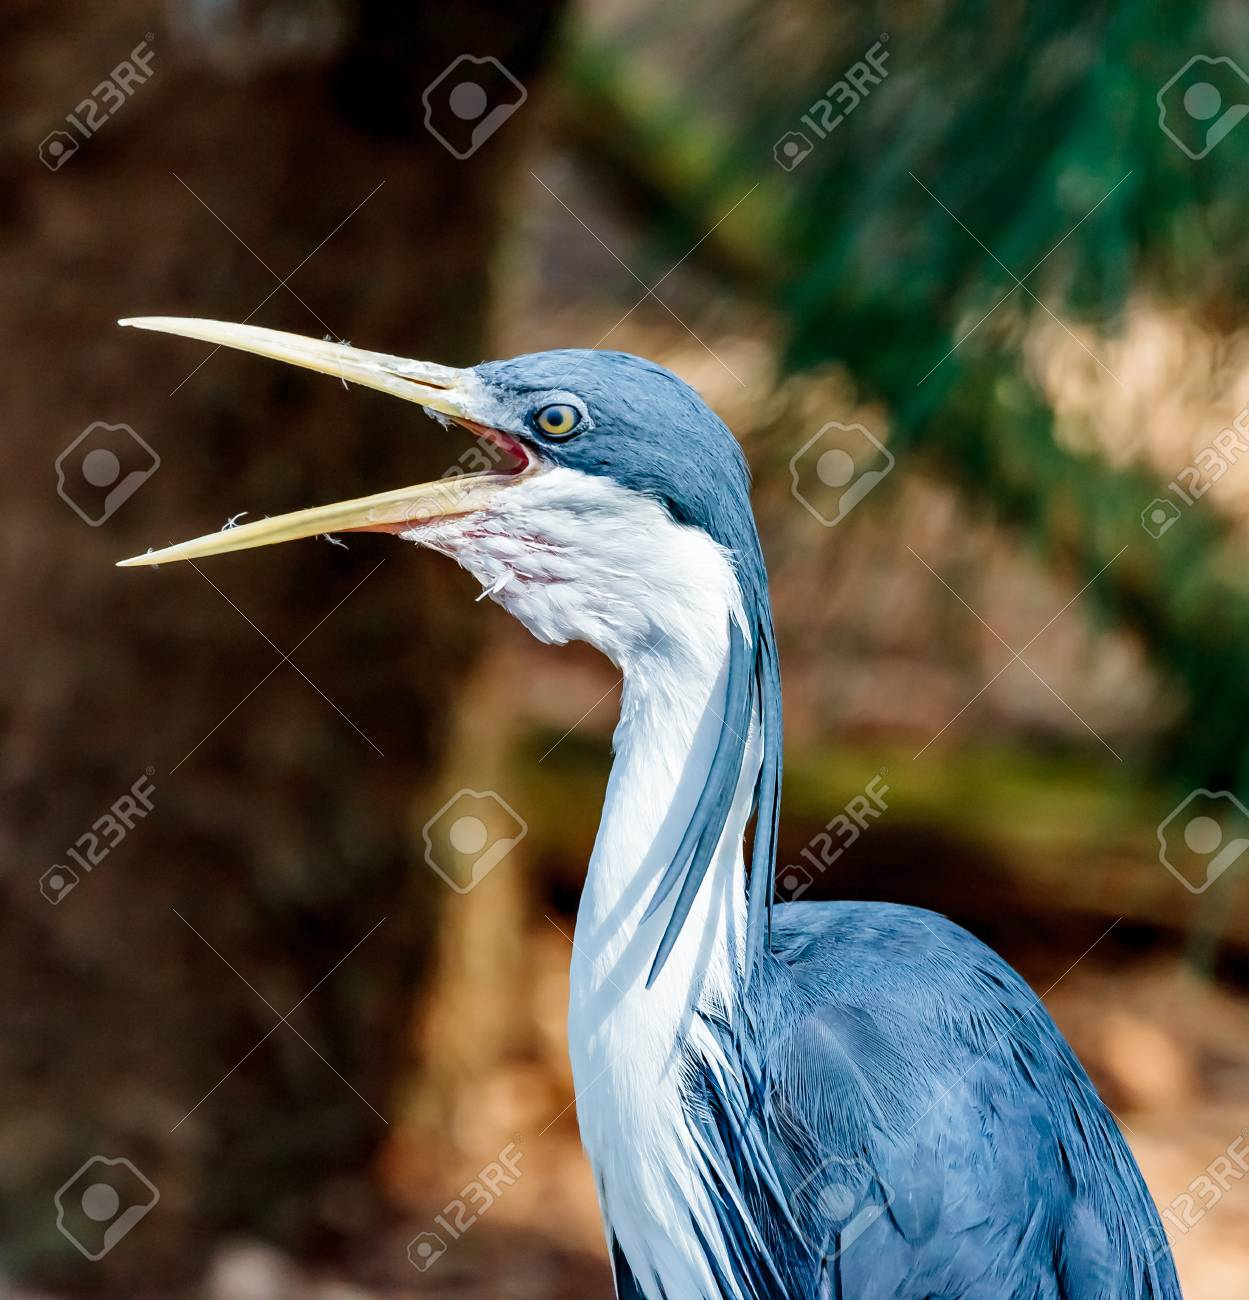 Close up of a Pied Heron mid preen. Stock Photo - 64067450